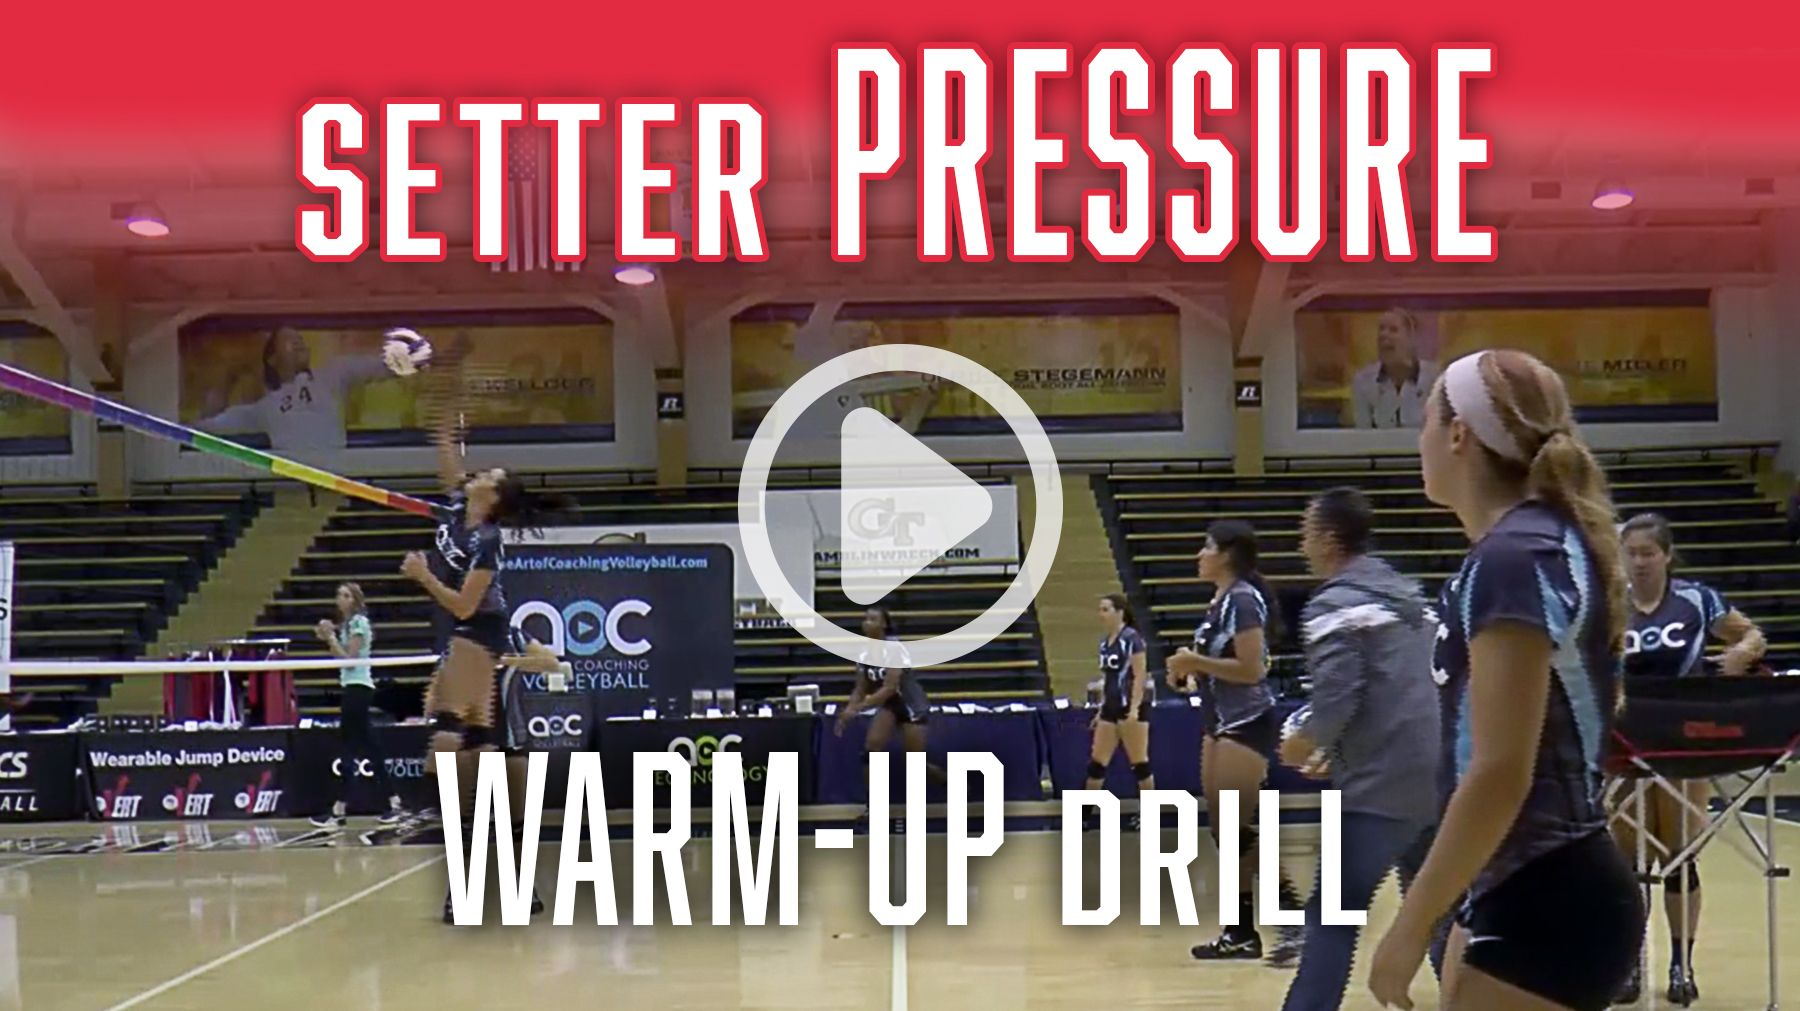 Setter Pressure Warmup Drill The Art Of Coaching Volleyball Coaching Volleyball Volleyball Setter Volleyball Drills